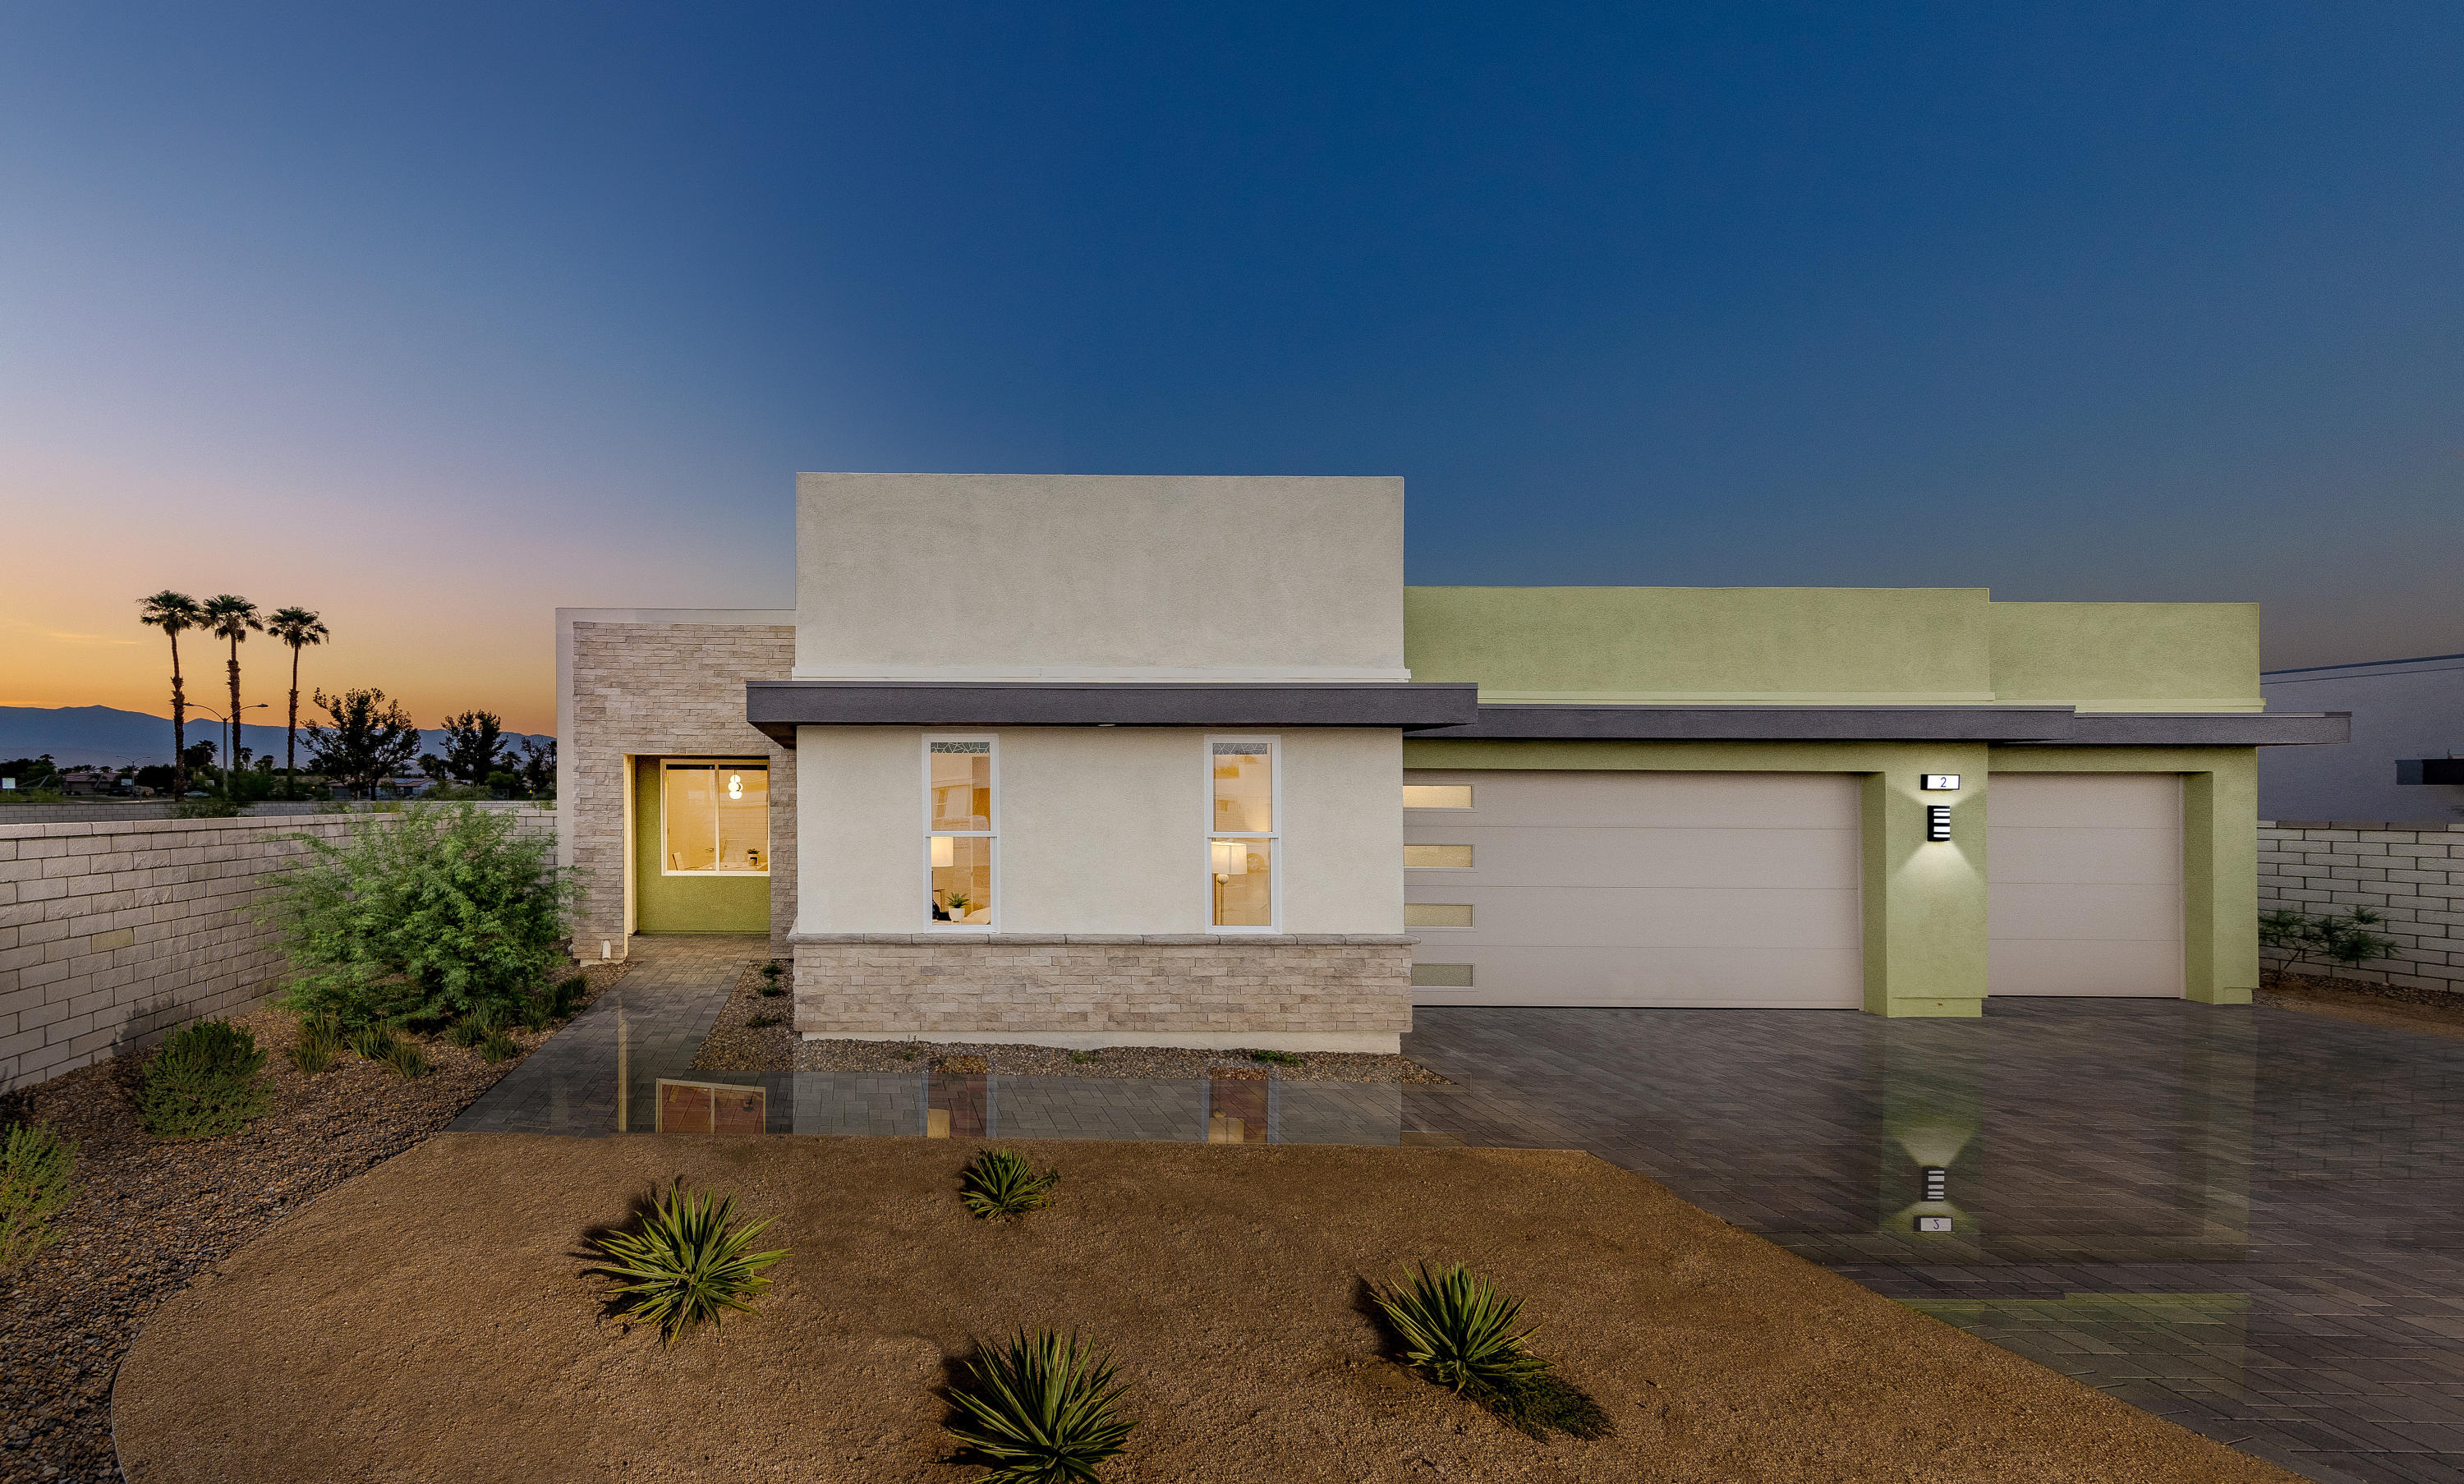 2540 SQ FT, 4 BEDROOMS, 3 BATHS, OVERSIZED 3 CAR GARAGE, TWO COVERED PATIOS, POOL/SPA, SOLAR SYSTEM.  IRIDIUM  is a boutique community of modern homes influence by the mid-century movement that has inspired desert architecture for years.  Created by Far West Industries, Iridium offers an enclave of 27 homes in a gated community, crafted in a distinctively modern style.  Designer appointed and architecturally honed with the strength and character of linear motion, Iridium takes todays living to a new style, a new comfort, a new convenience.  Generous homesites that include a private pool and spa that makes your new home feel like a complete resort.   You will discover endless lifestyle opportunities with verdant green golf courses, diverse dining options, art galleries, boutique stores, casinos, the El Paseo shopping district, and all within a few minutes' drive from your new home. Pictures are from the model home and not the home offered for sale. Sales have been robust. Final phase for coming soon! Please call first to book an appointment.